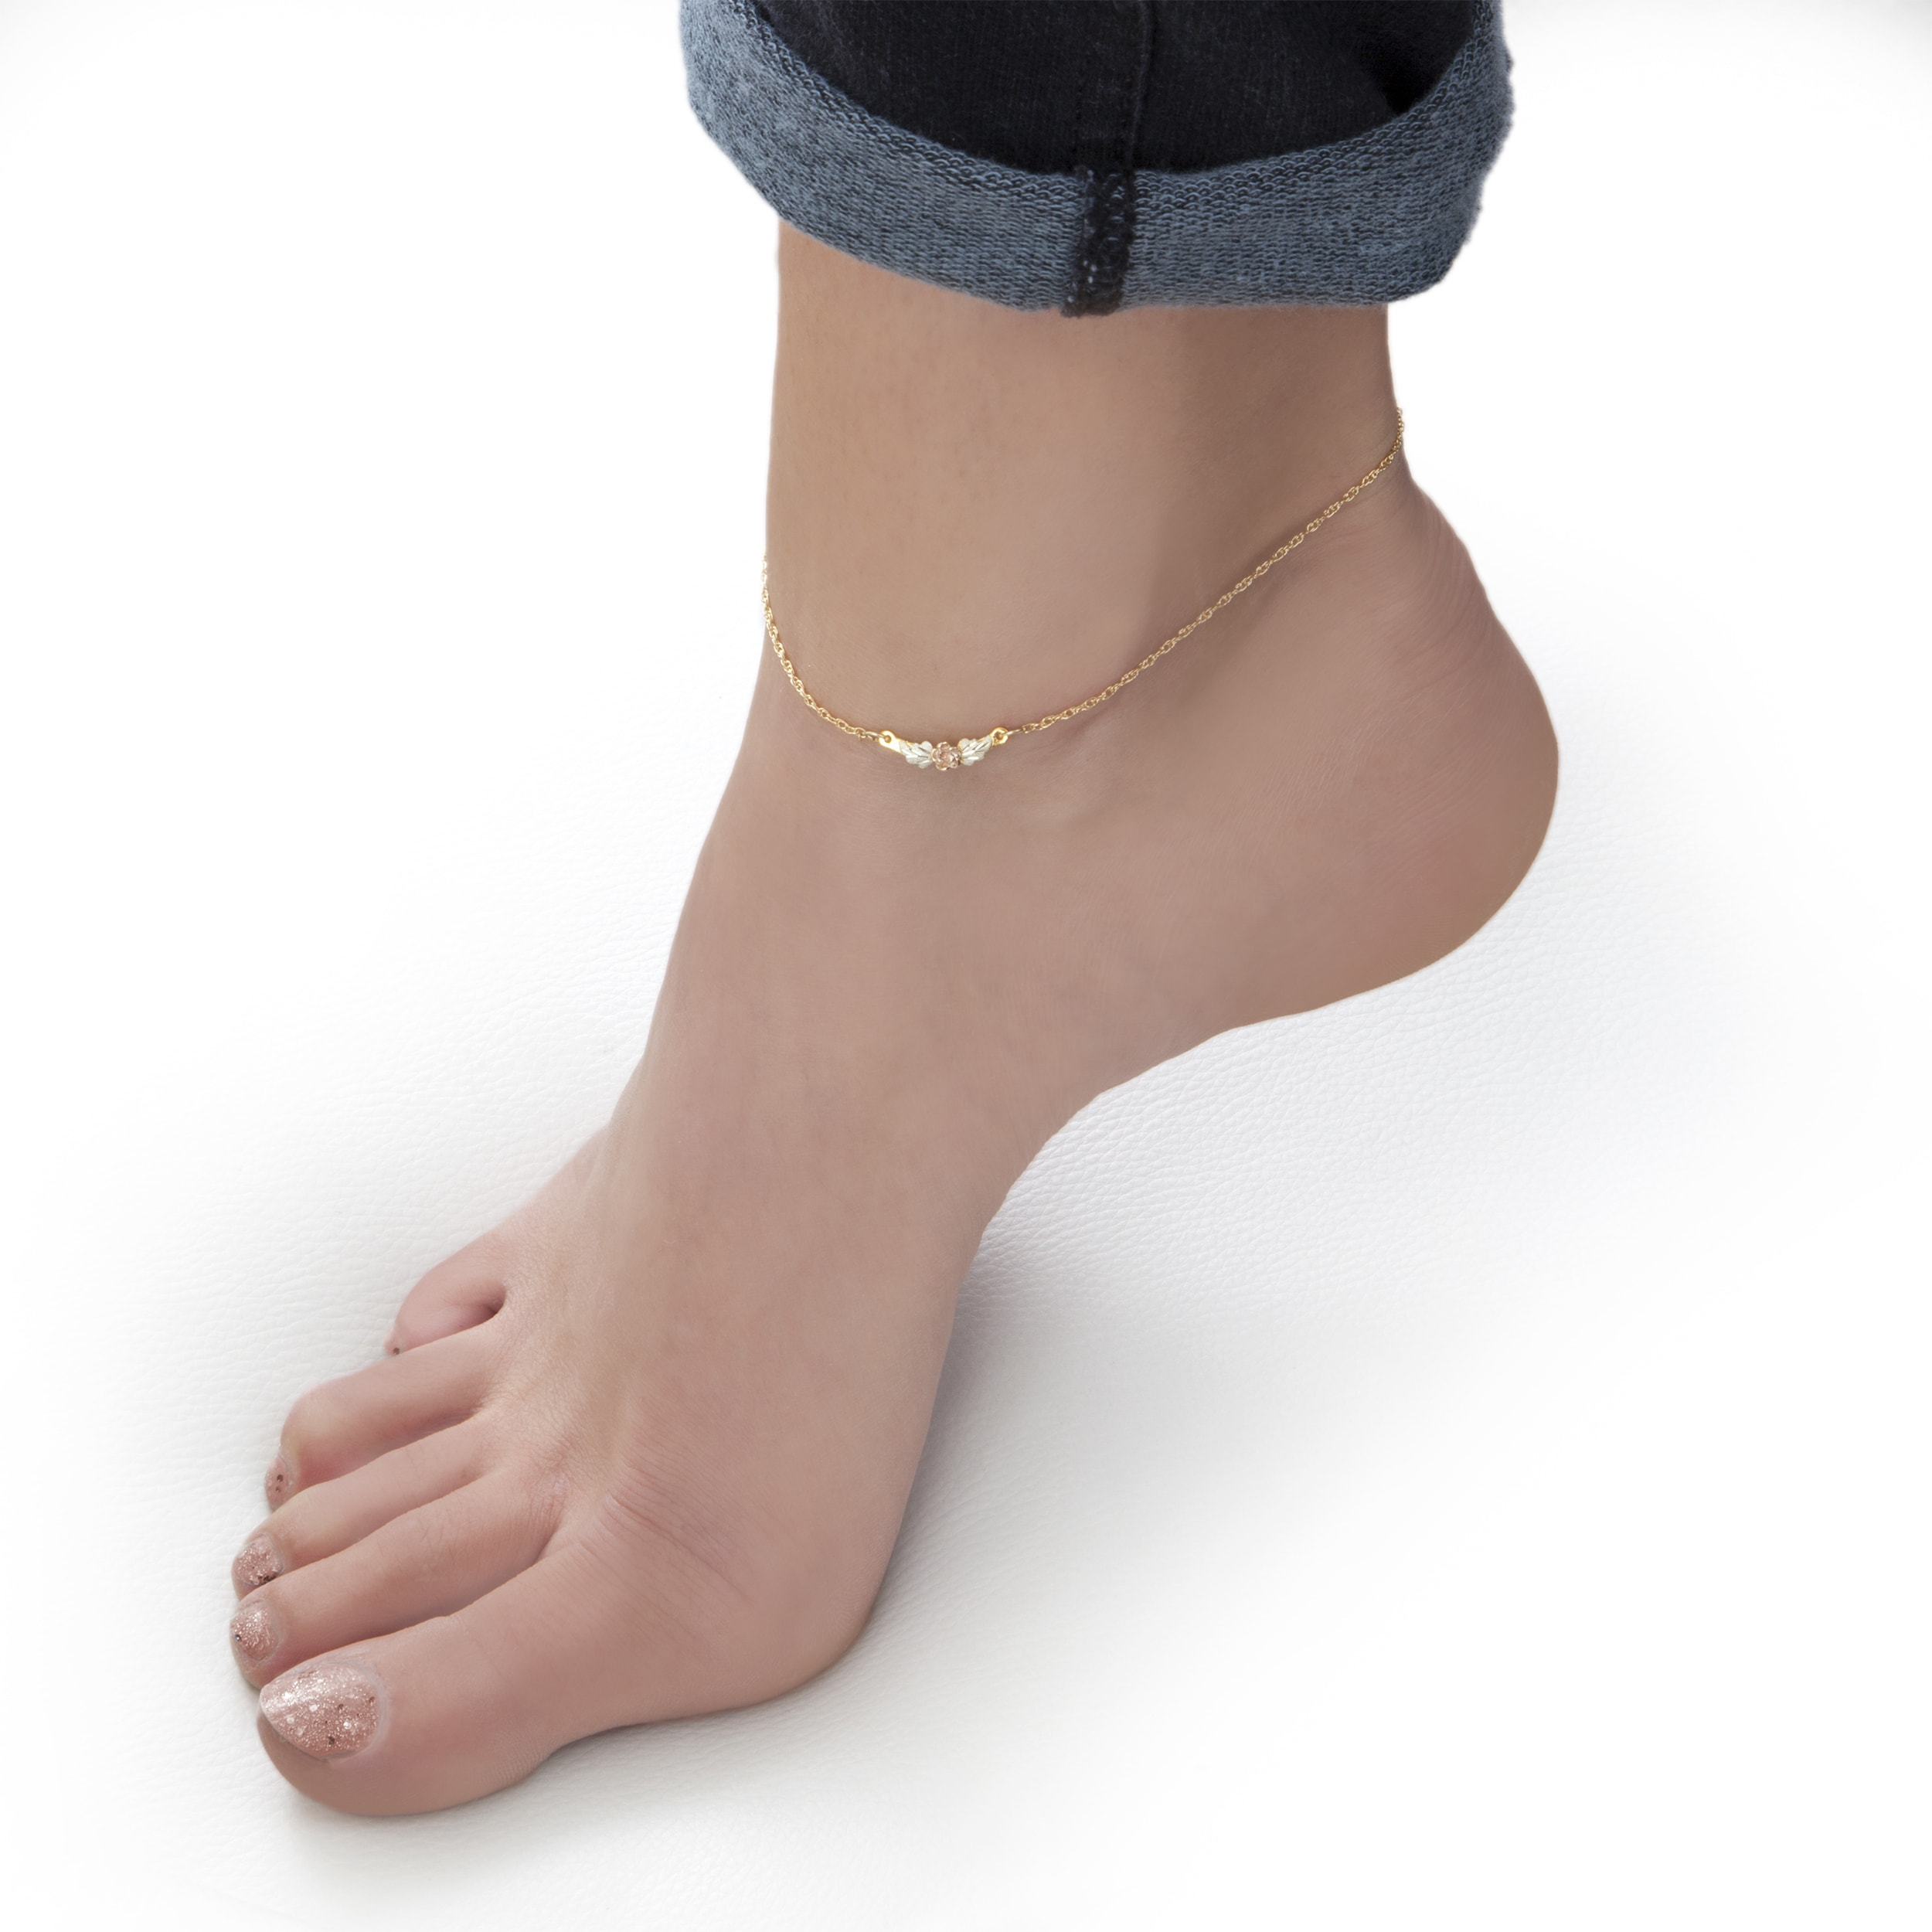 ankle popular beautiful anklet for oblacoder beads beaded bracelet toe women bracelets